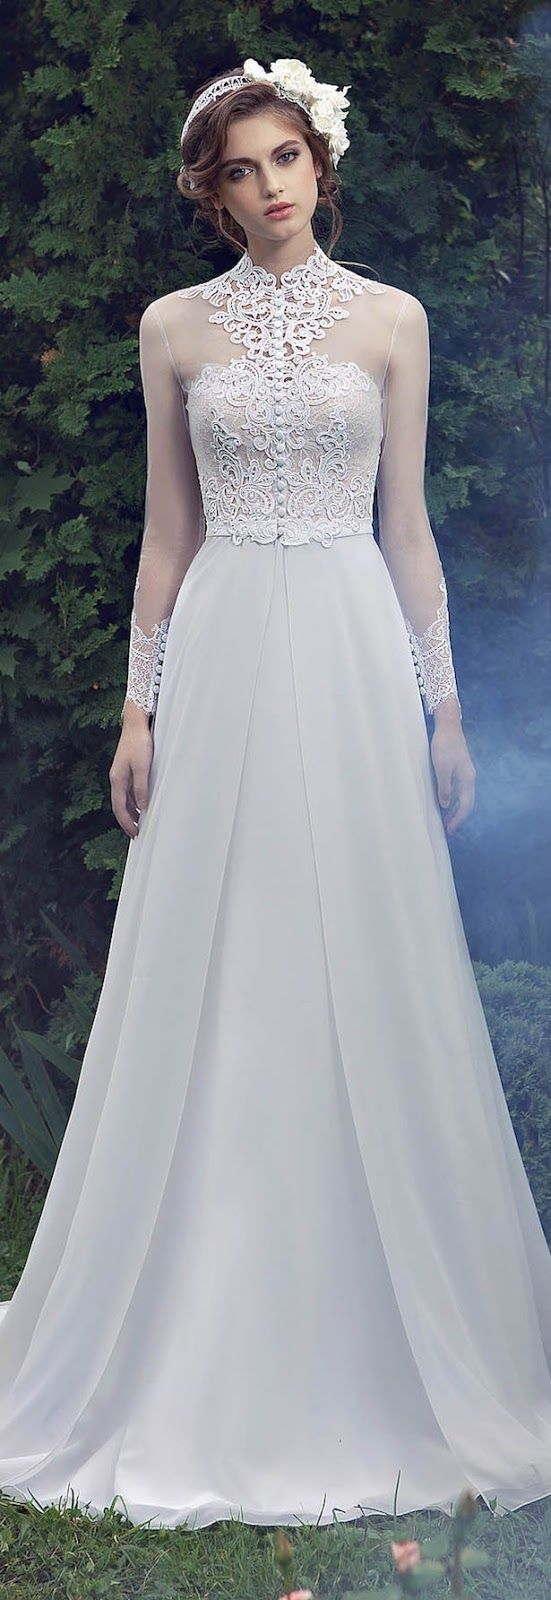 Alineprincess prom party dresses luxurious high neck formal